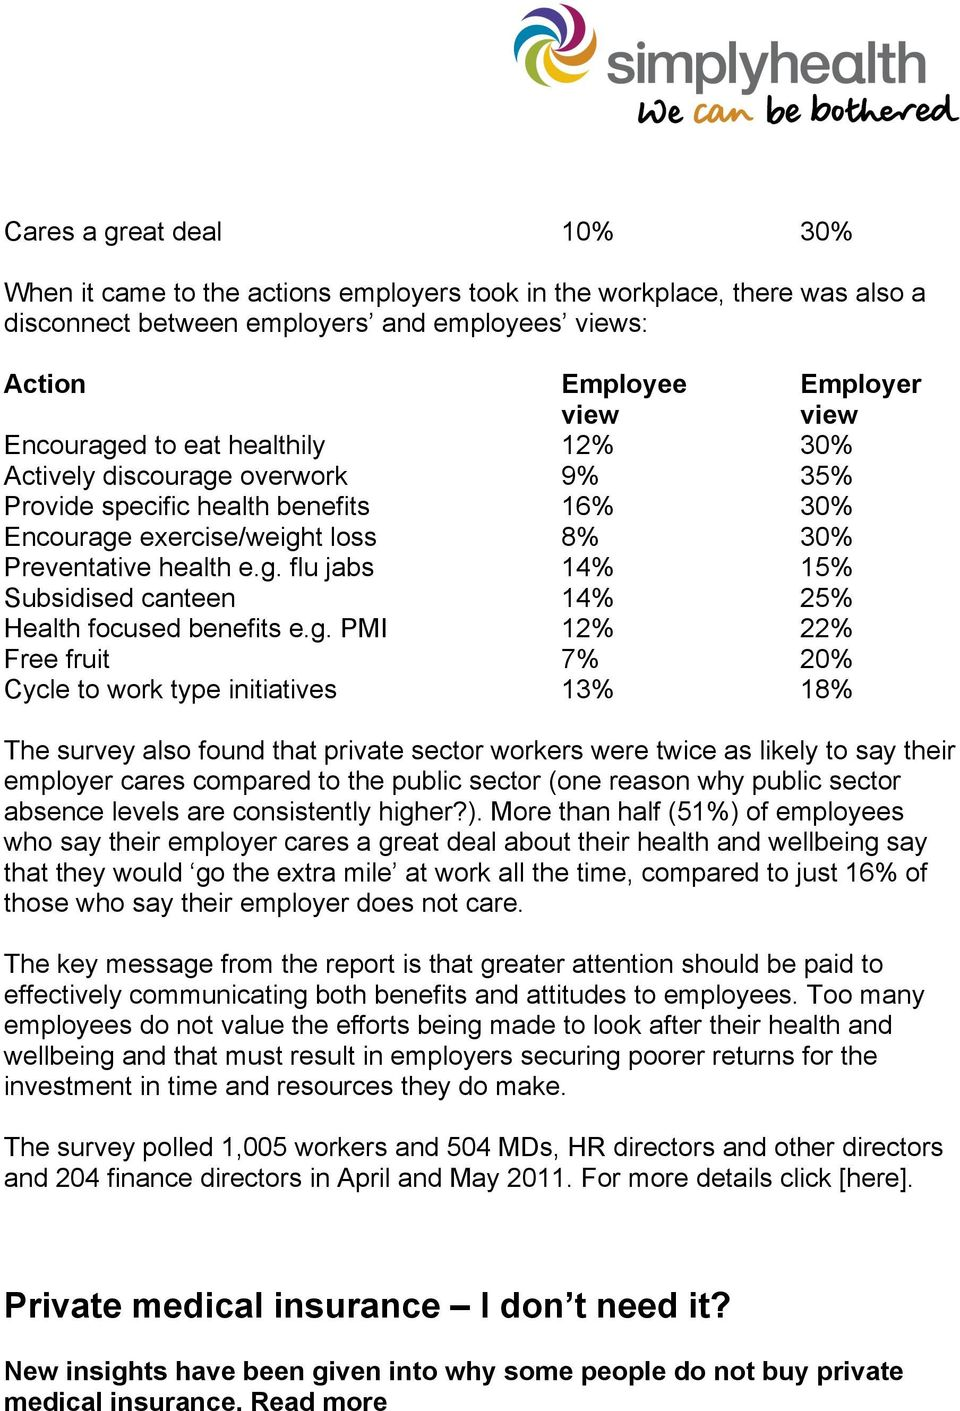 g. PMI 12% 22% Free fruit 7% 20% Cycle to work type initiatives 13% 18% The survey also found that private sector workers were twice as likely to say their employer cares compared to the public